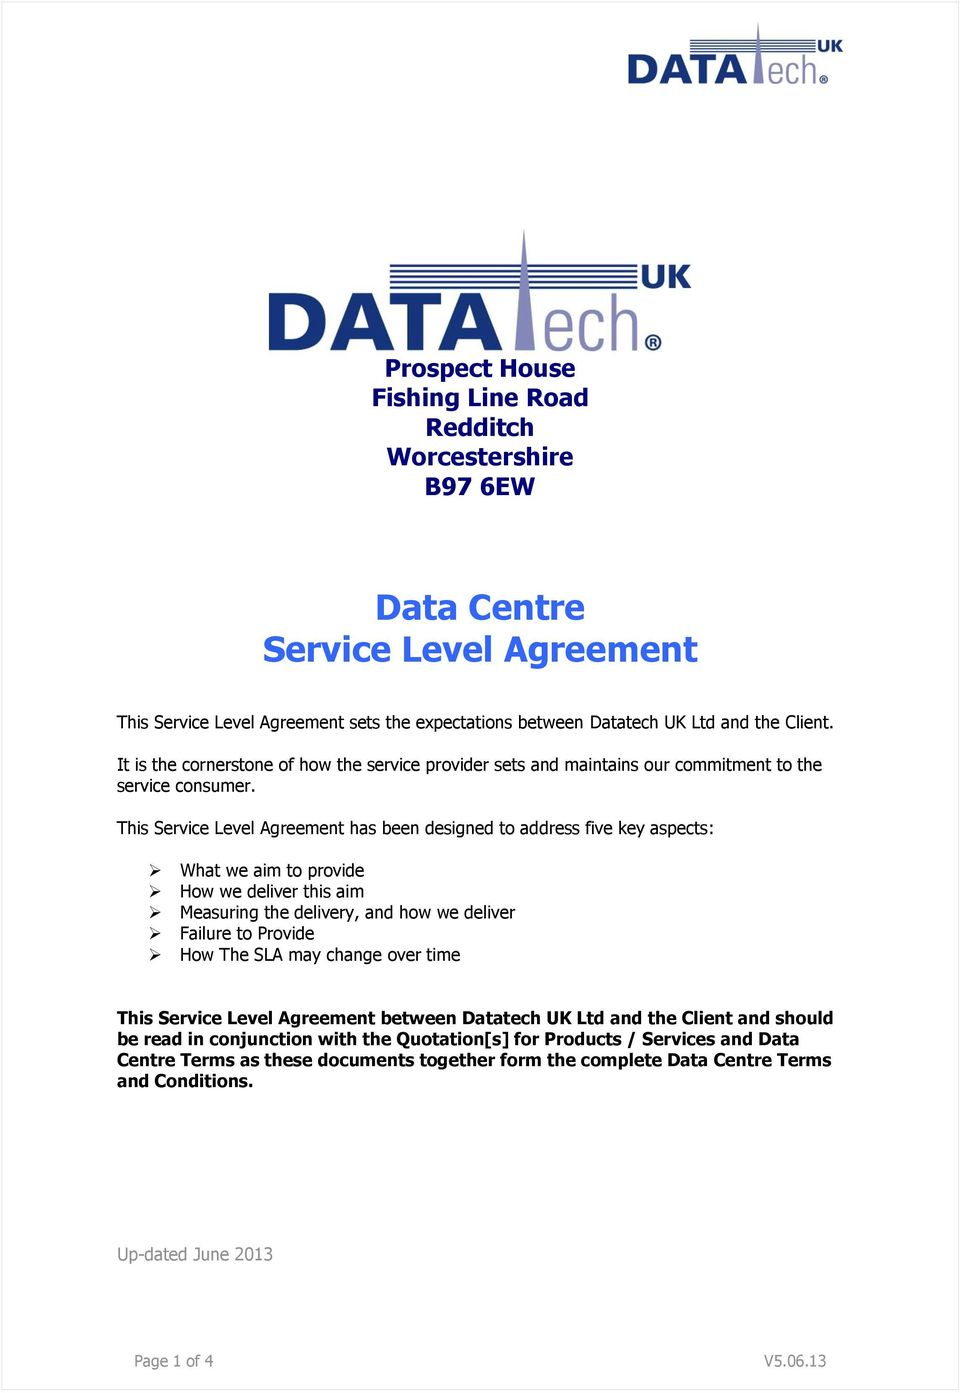 This Service Level Agreement has been designed to address five key aspects: What we aim to provide How we deliver this aim Measuring the delivery, and how we deliver Failure to Provide How The SLA